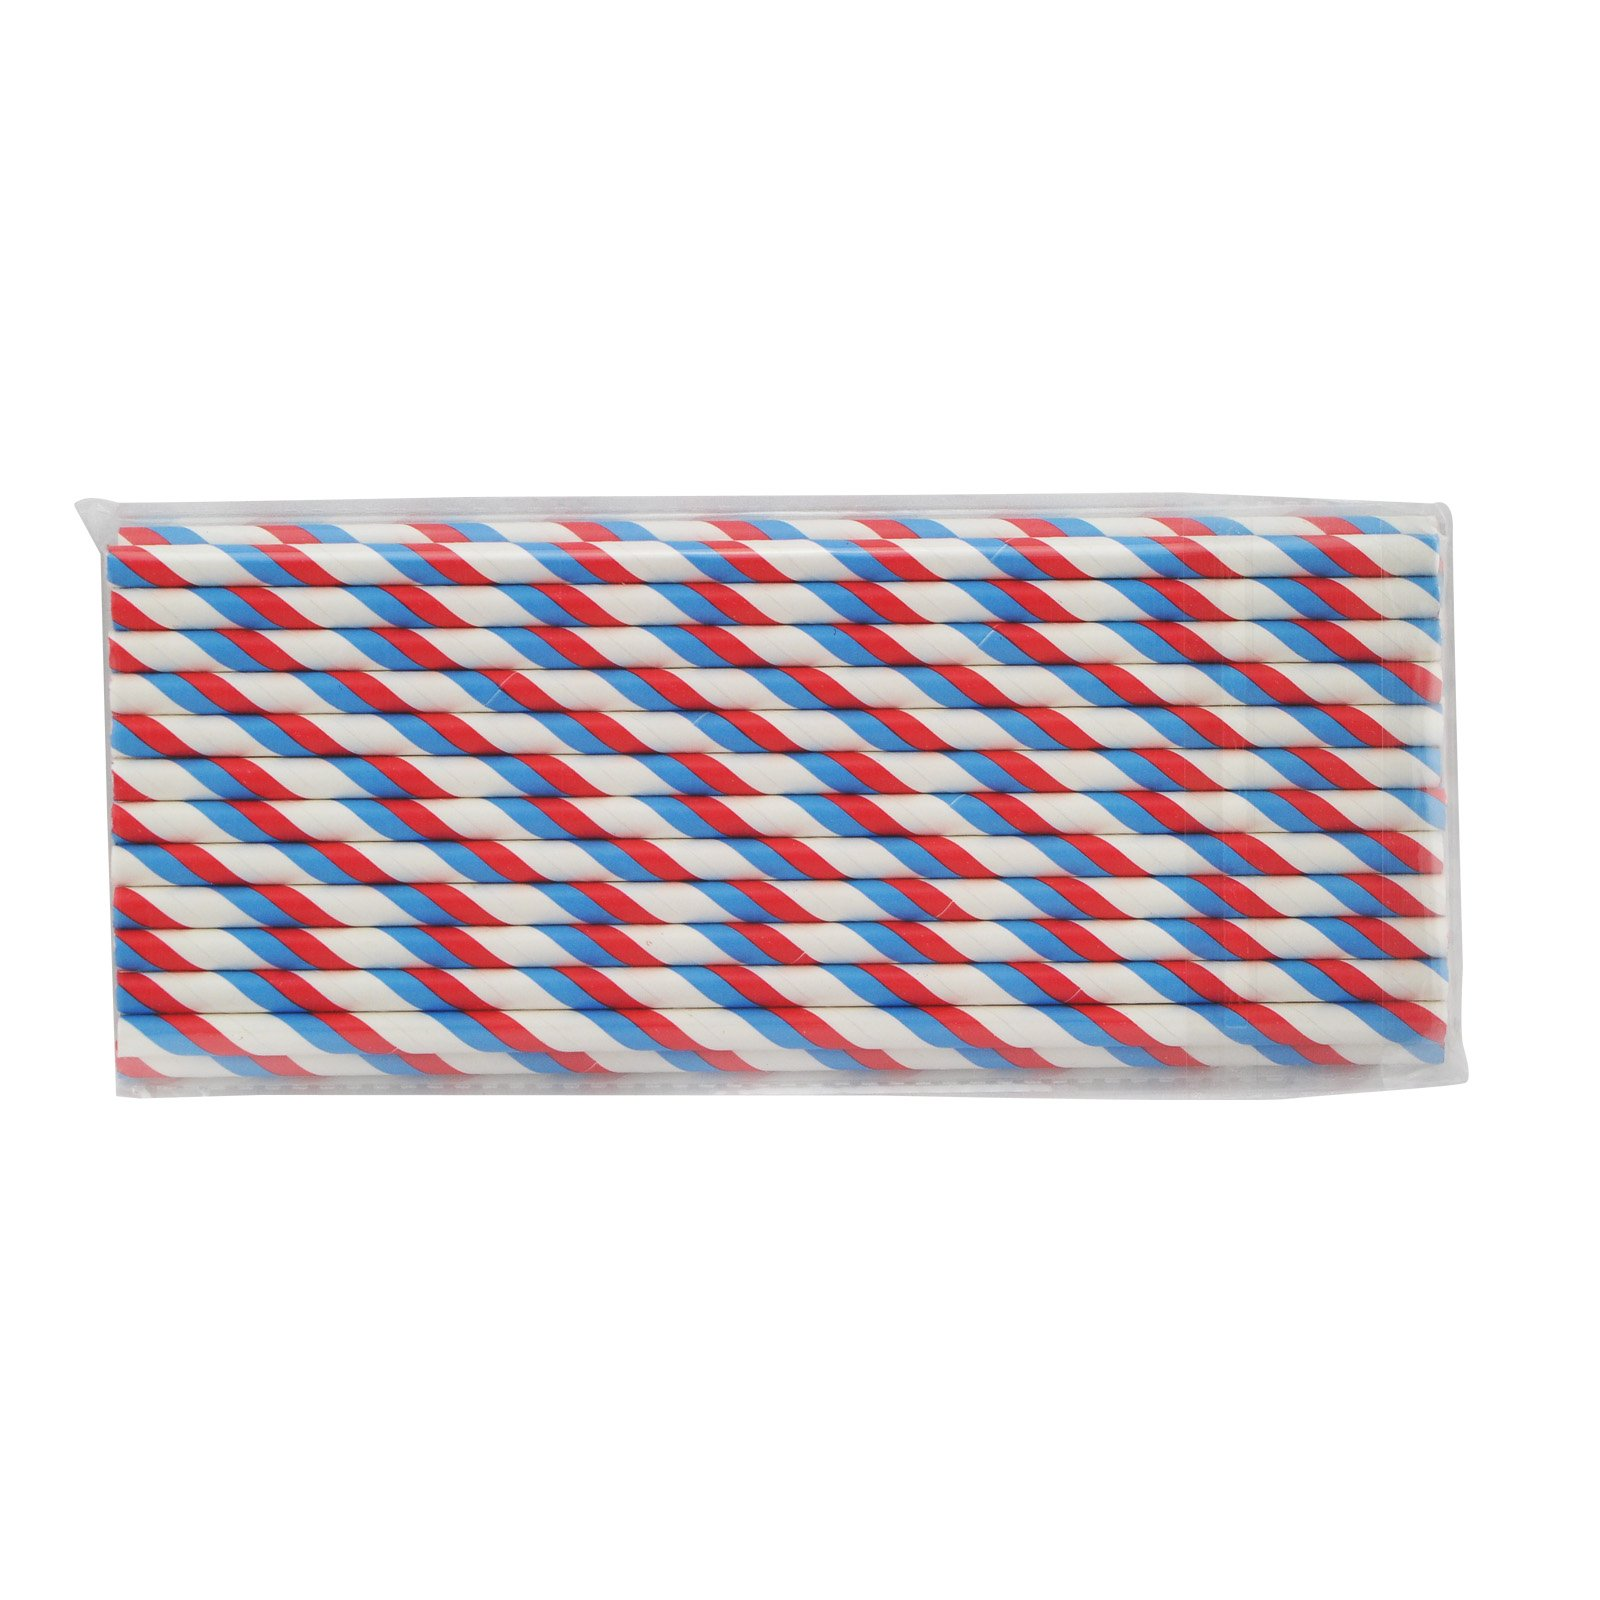 Zinnor Paper Stripe Straws,25 Pcs Paper Drinking Straws for Birthday Festival Party Table Decorations (Red Blue)